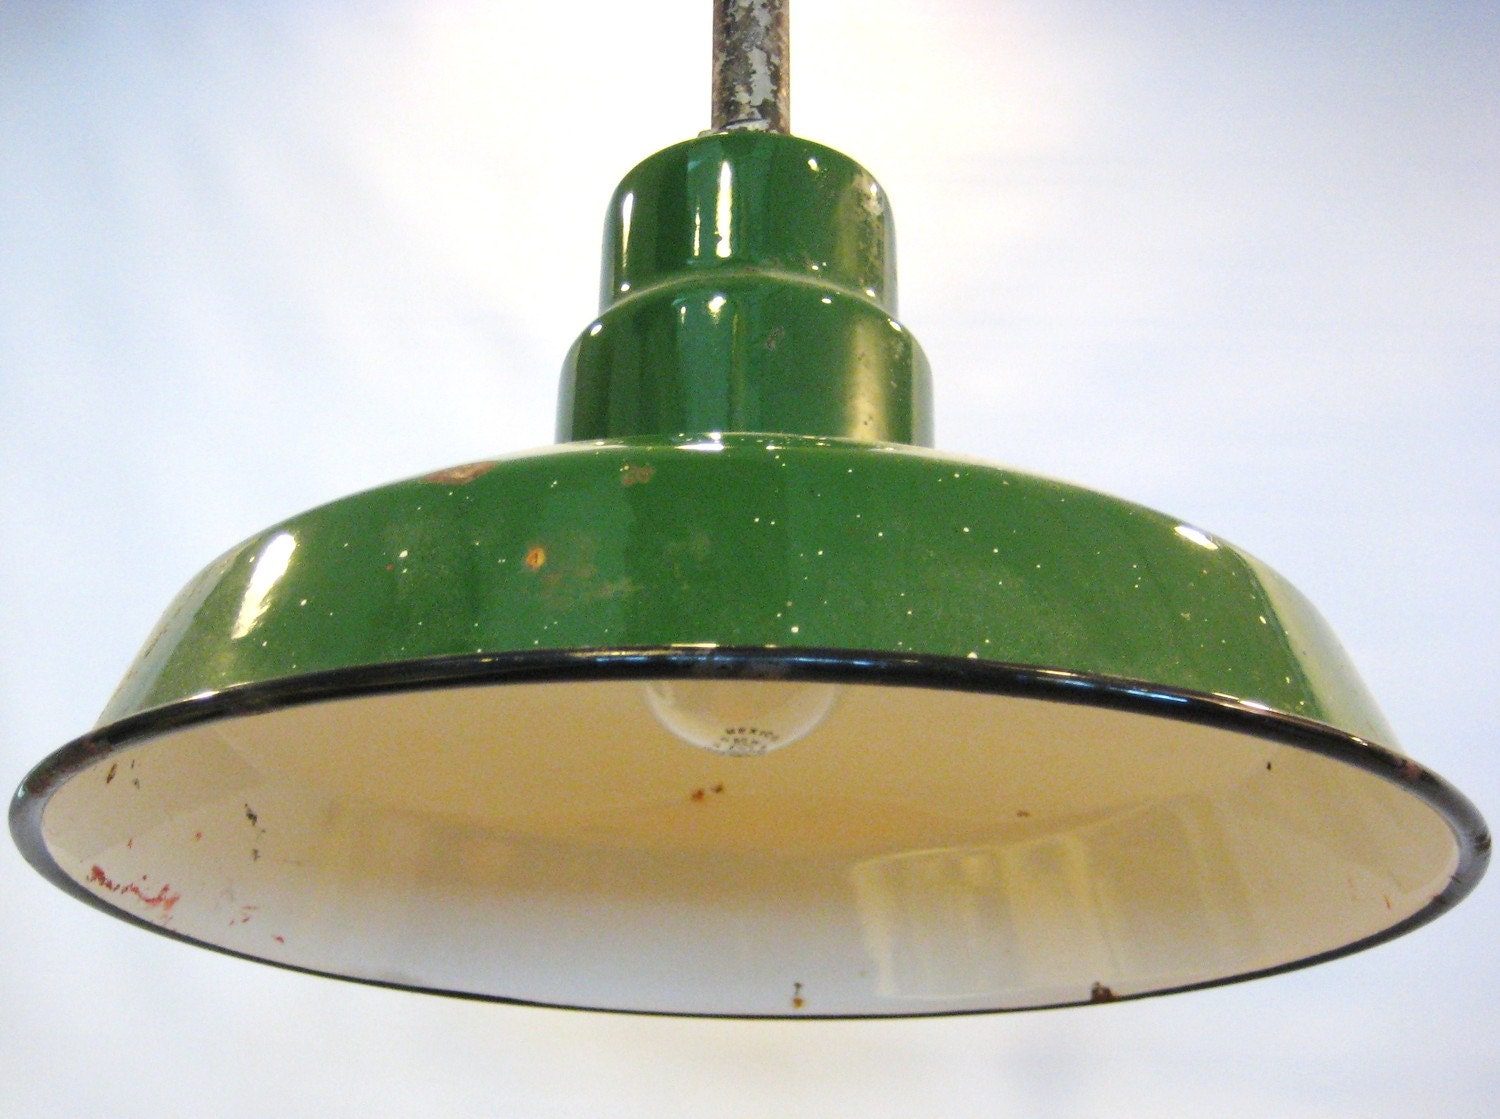 Metal Hanging Lights Of Antique Green Enamel Metal Hanging Light Fixture By Barneche